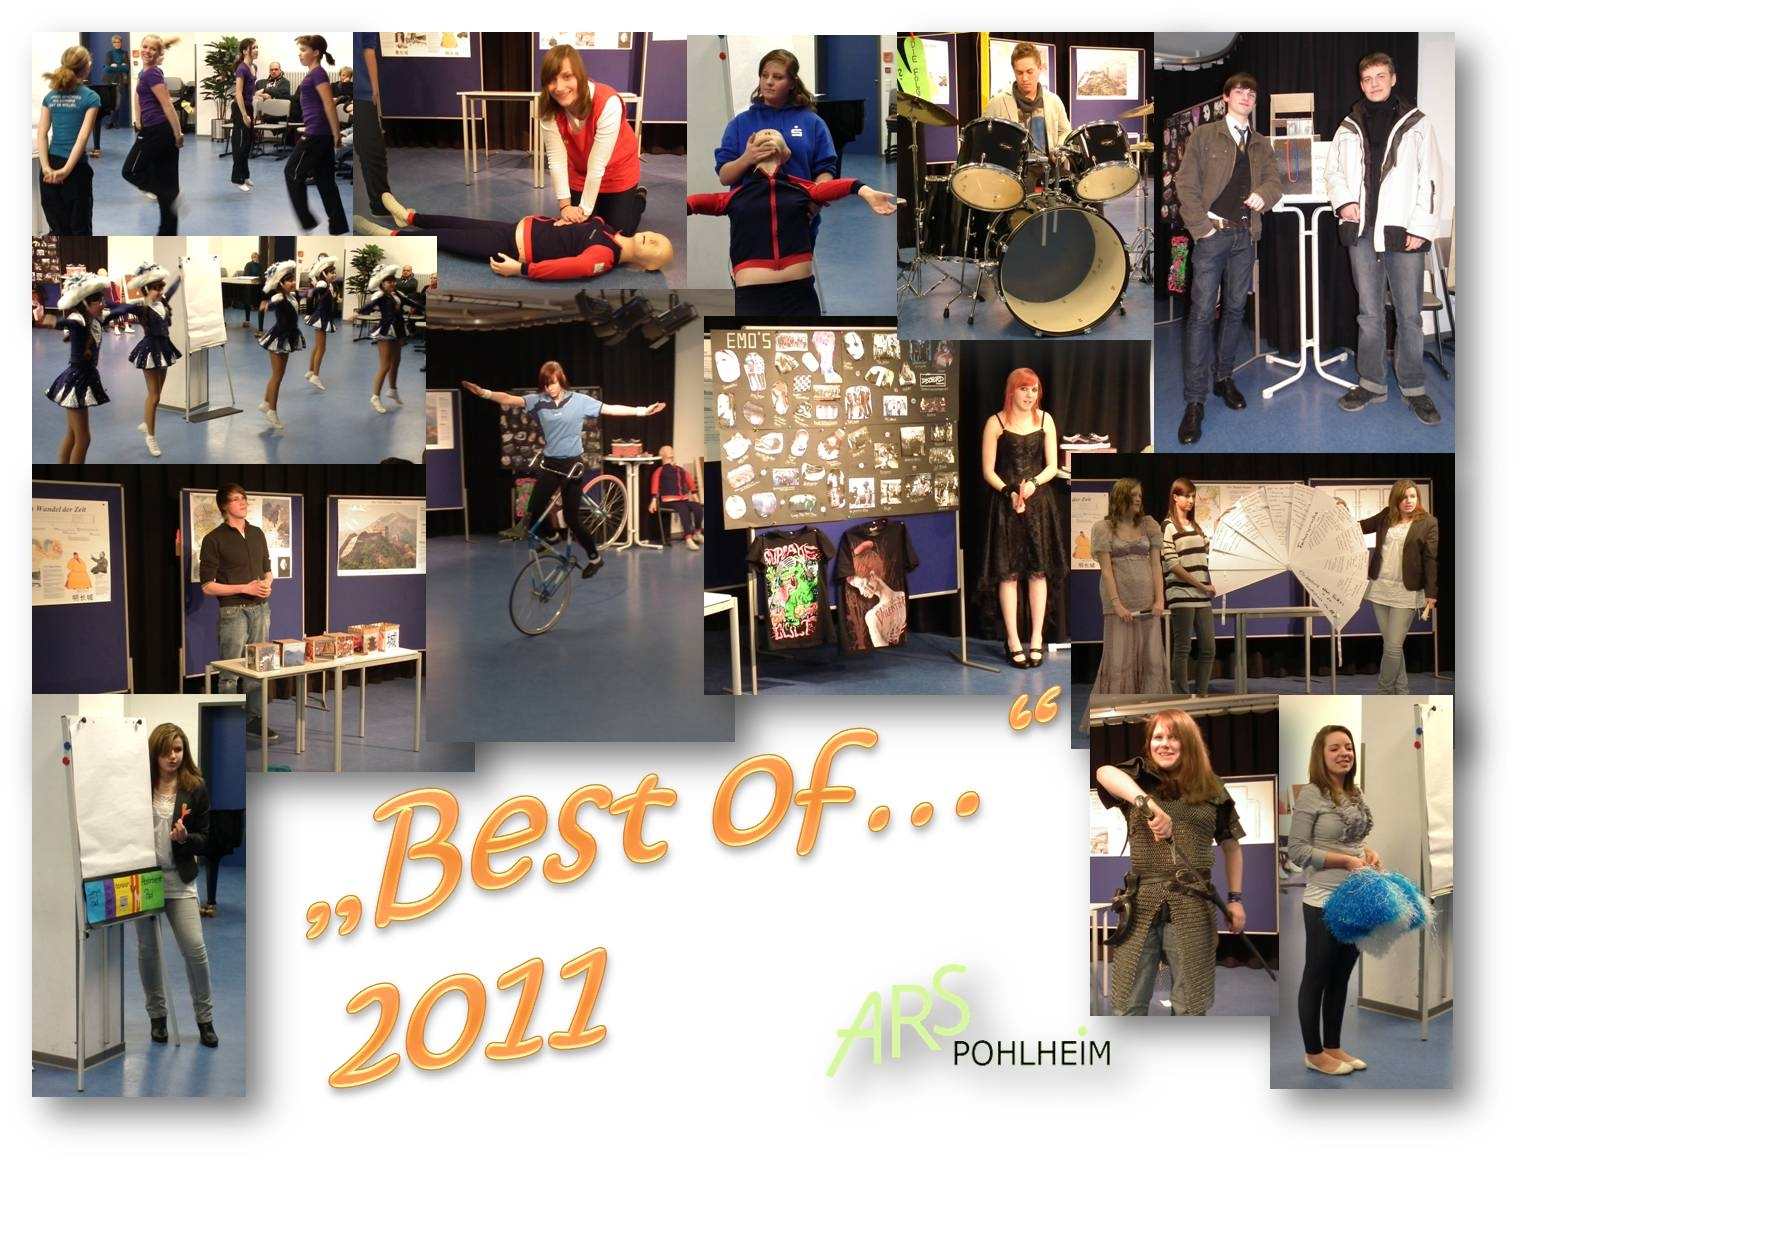 Best of 2011 collage